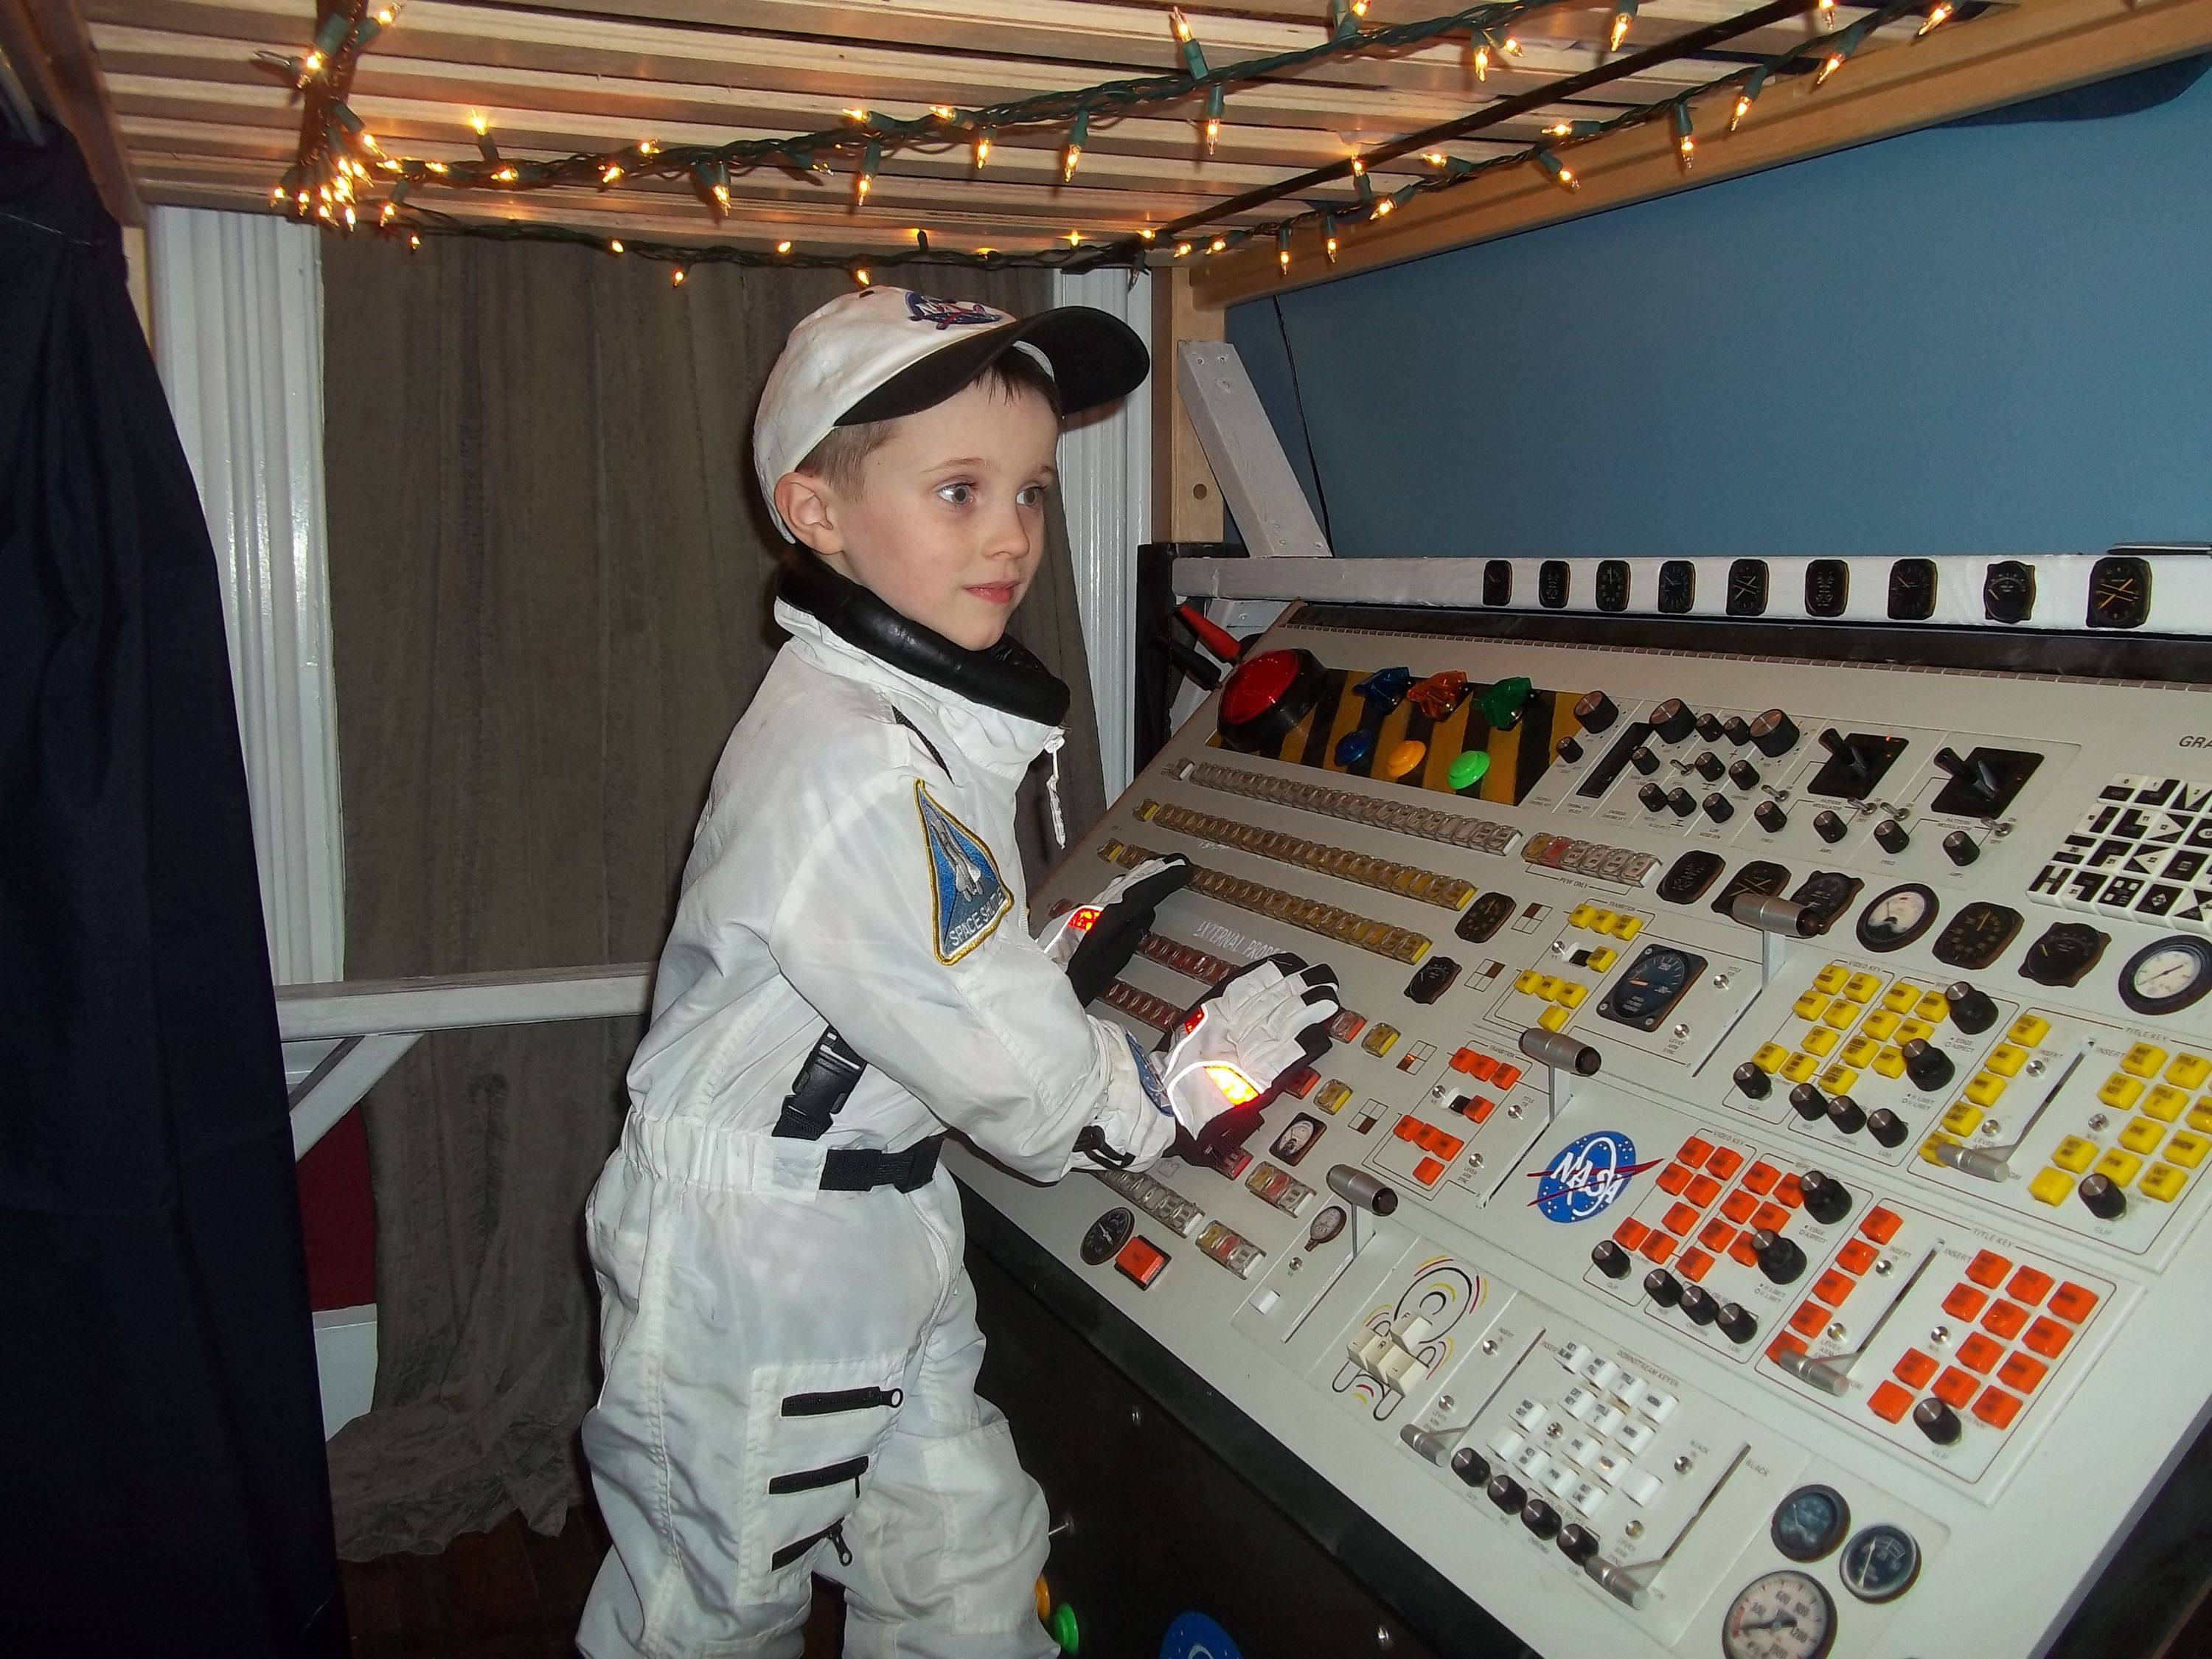 Redditor Builds Spaceship for Son from Scrap Broadcast Equipment